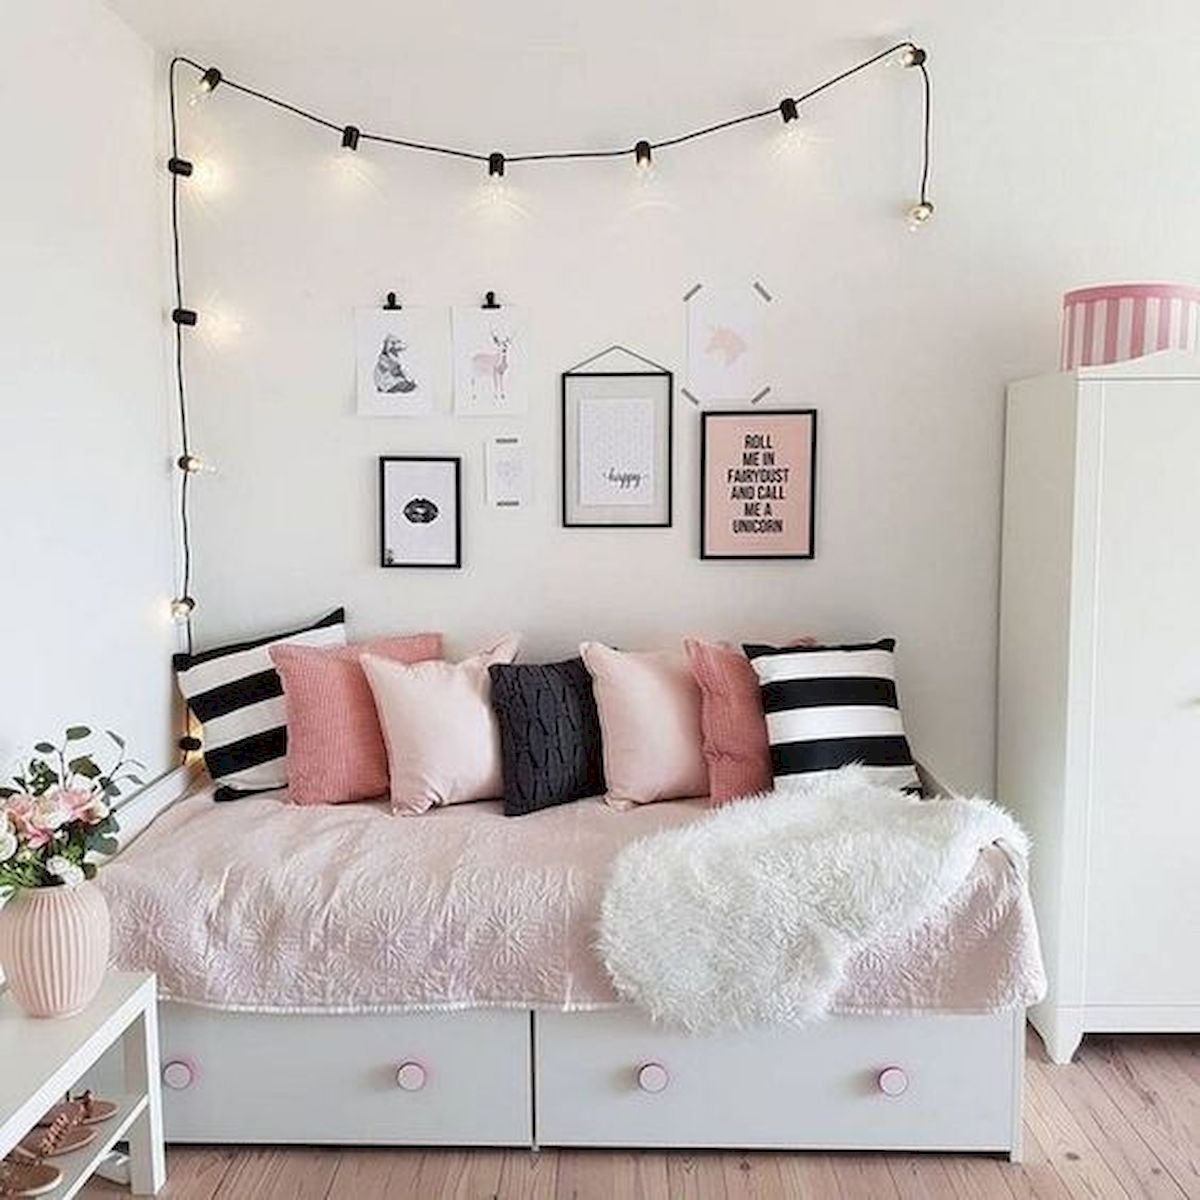 40 Cute Small Bedroom Design and Decor Ideas for Teenage Girl (27)